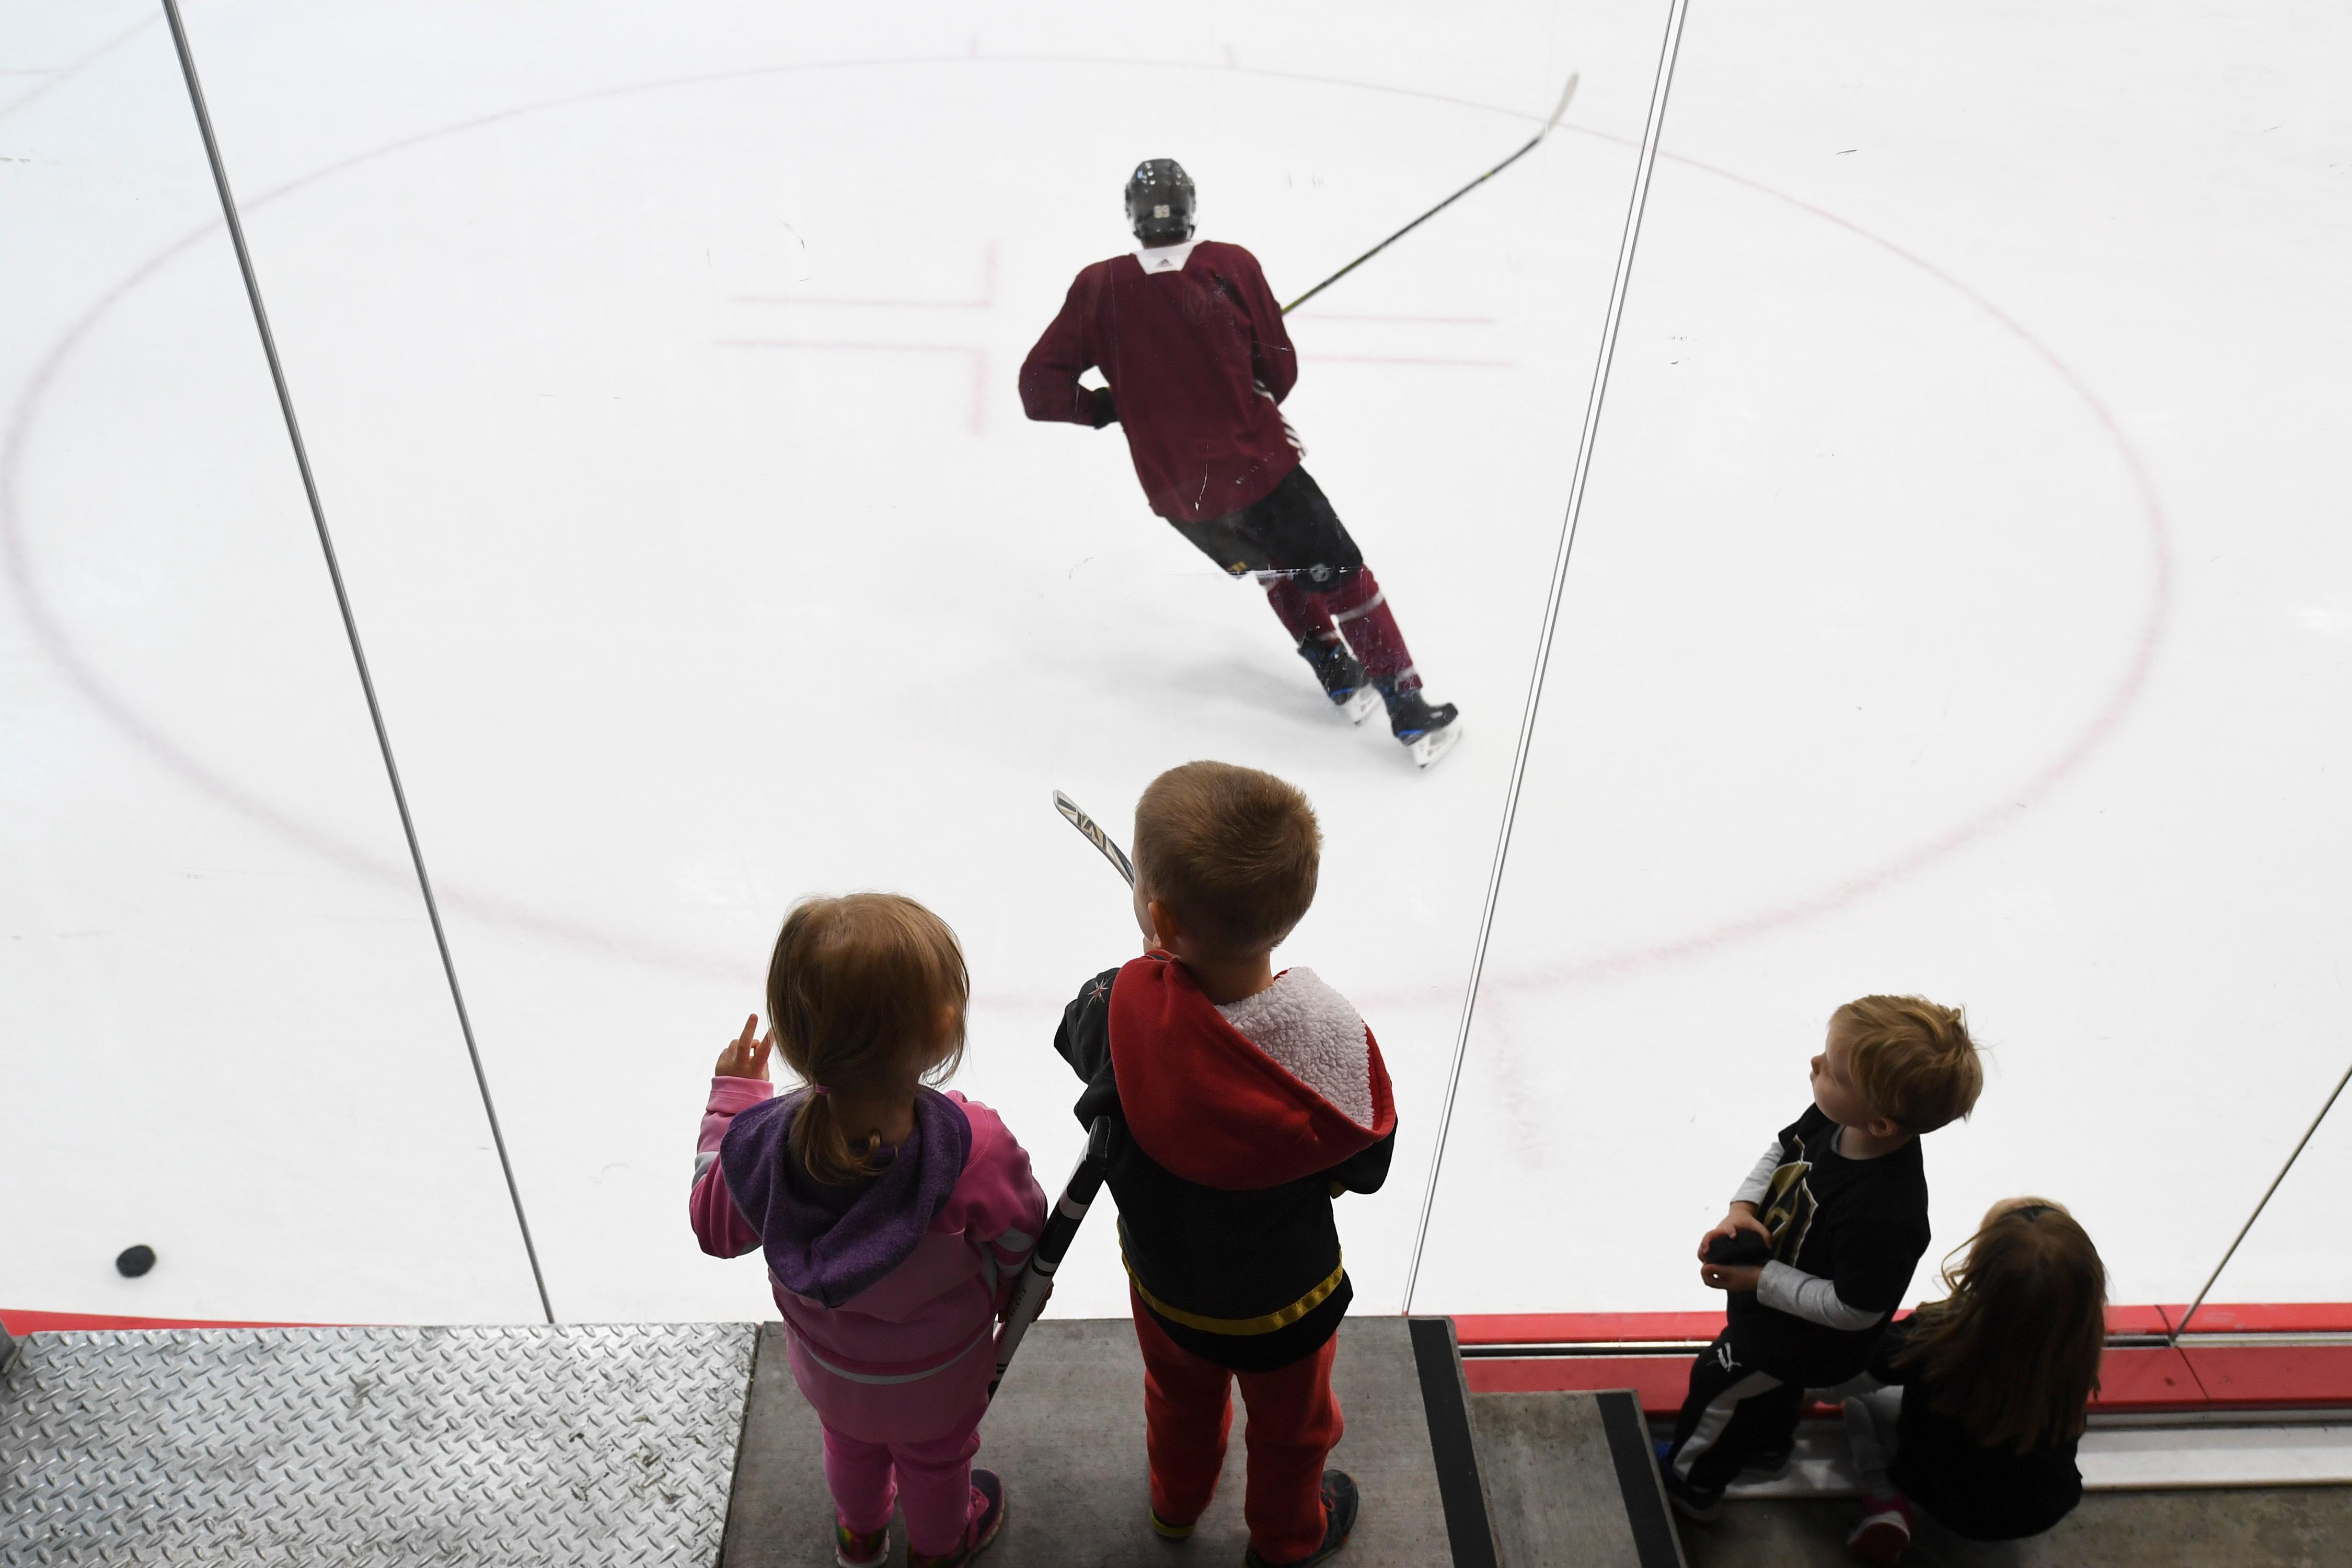 Young fans watch during the Vegas Golden Knights practice Friday, April 20, 2018, at City National Arena in Las Vegas. CREDIT: Sam Morris/Las Vegas News Bureau